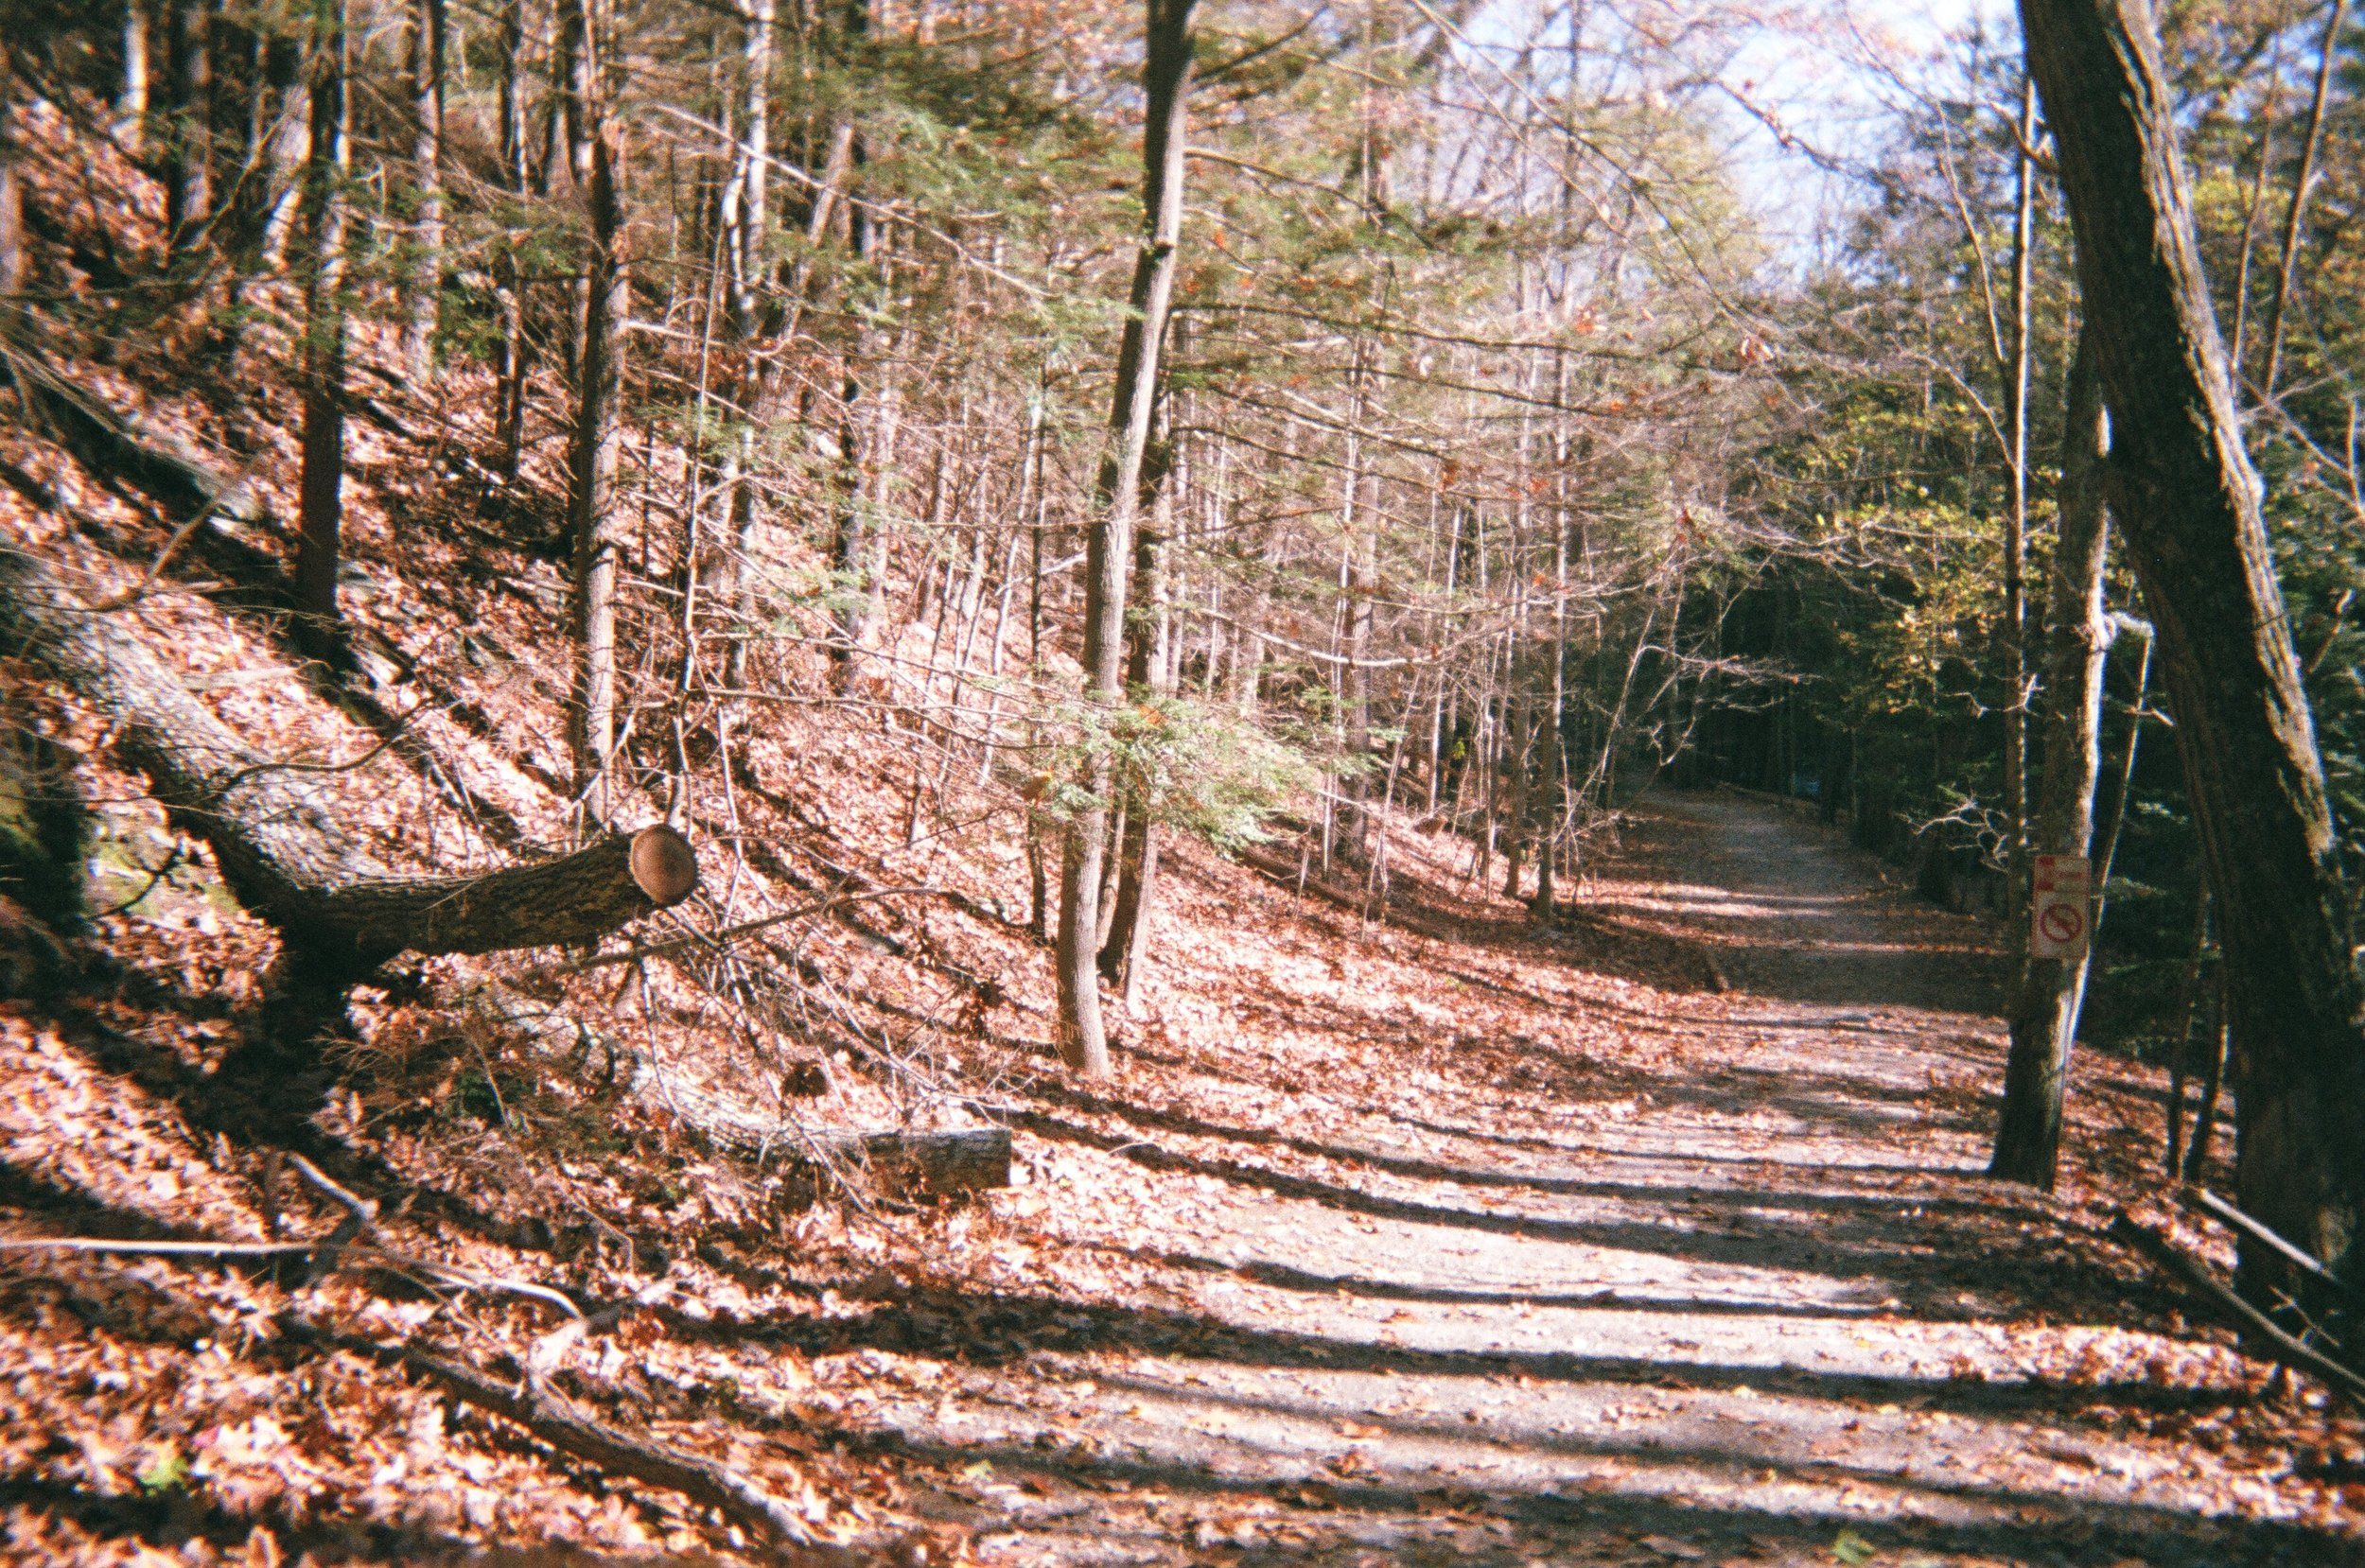 Pathway on a stop in Taconic State Park.